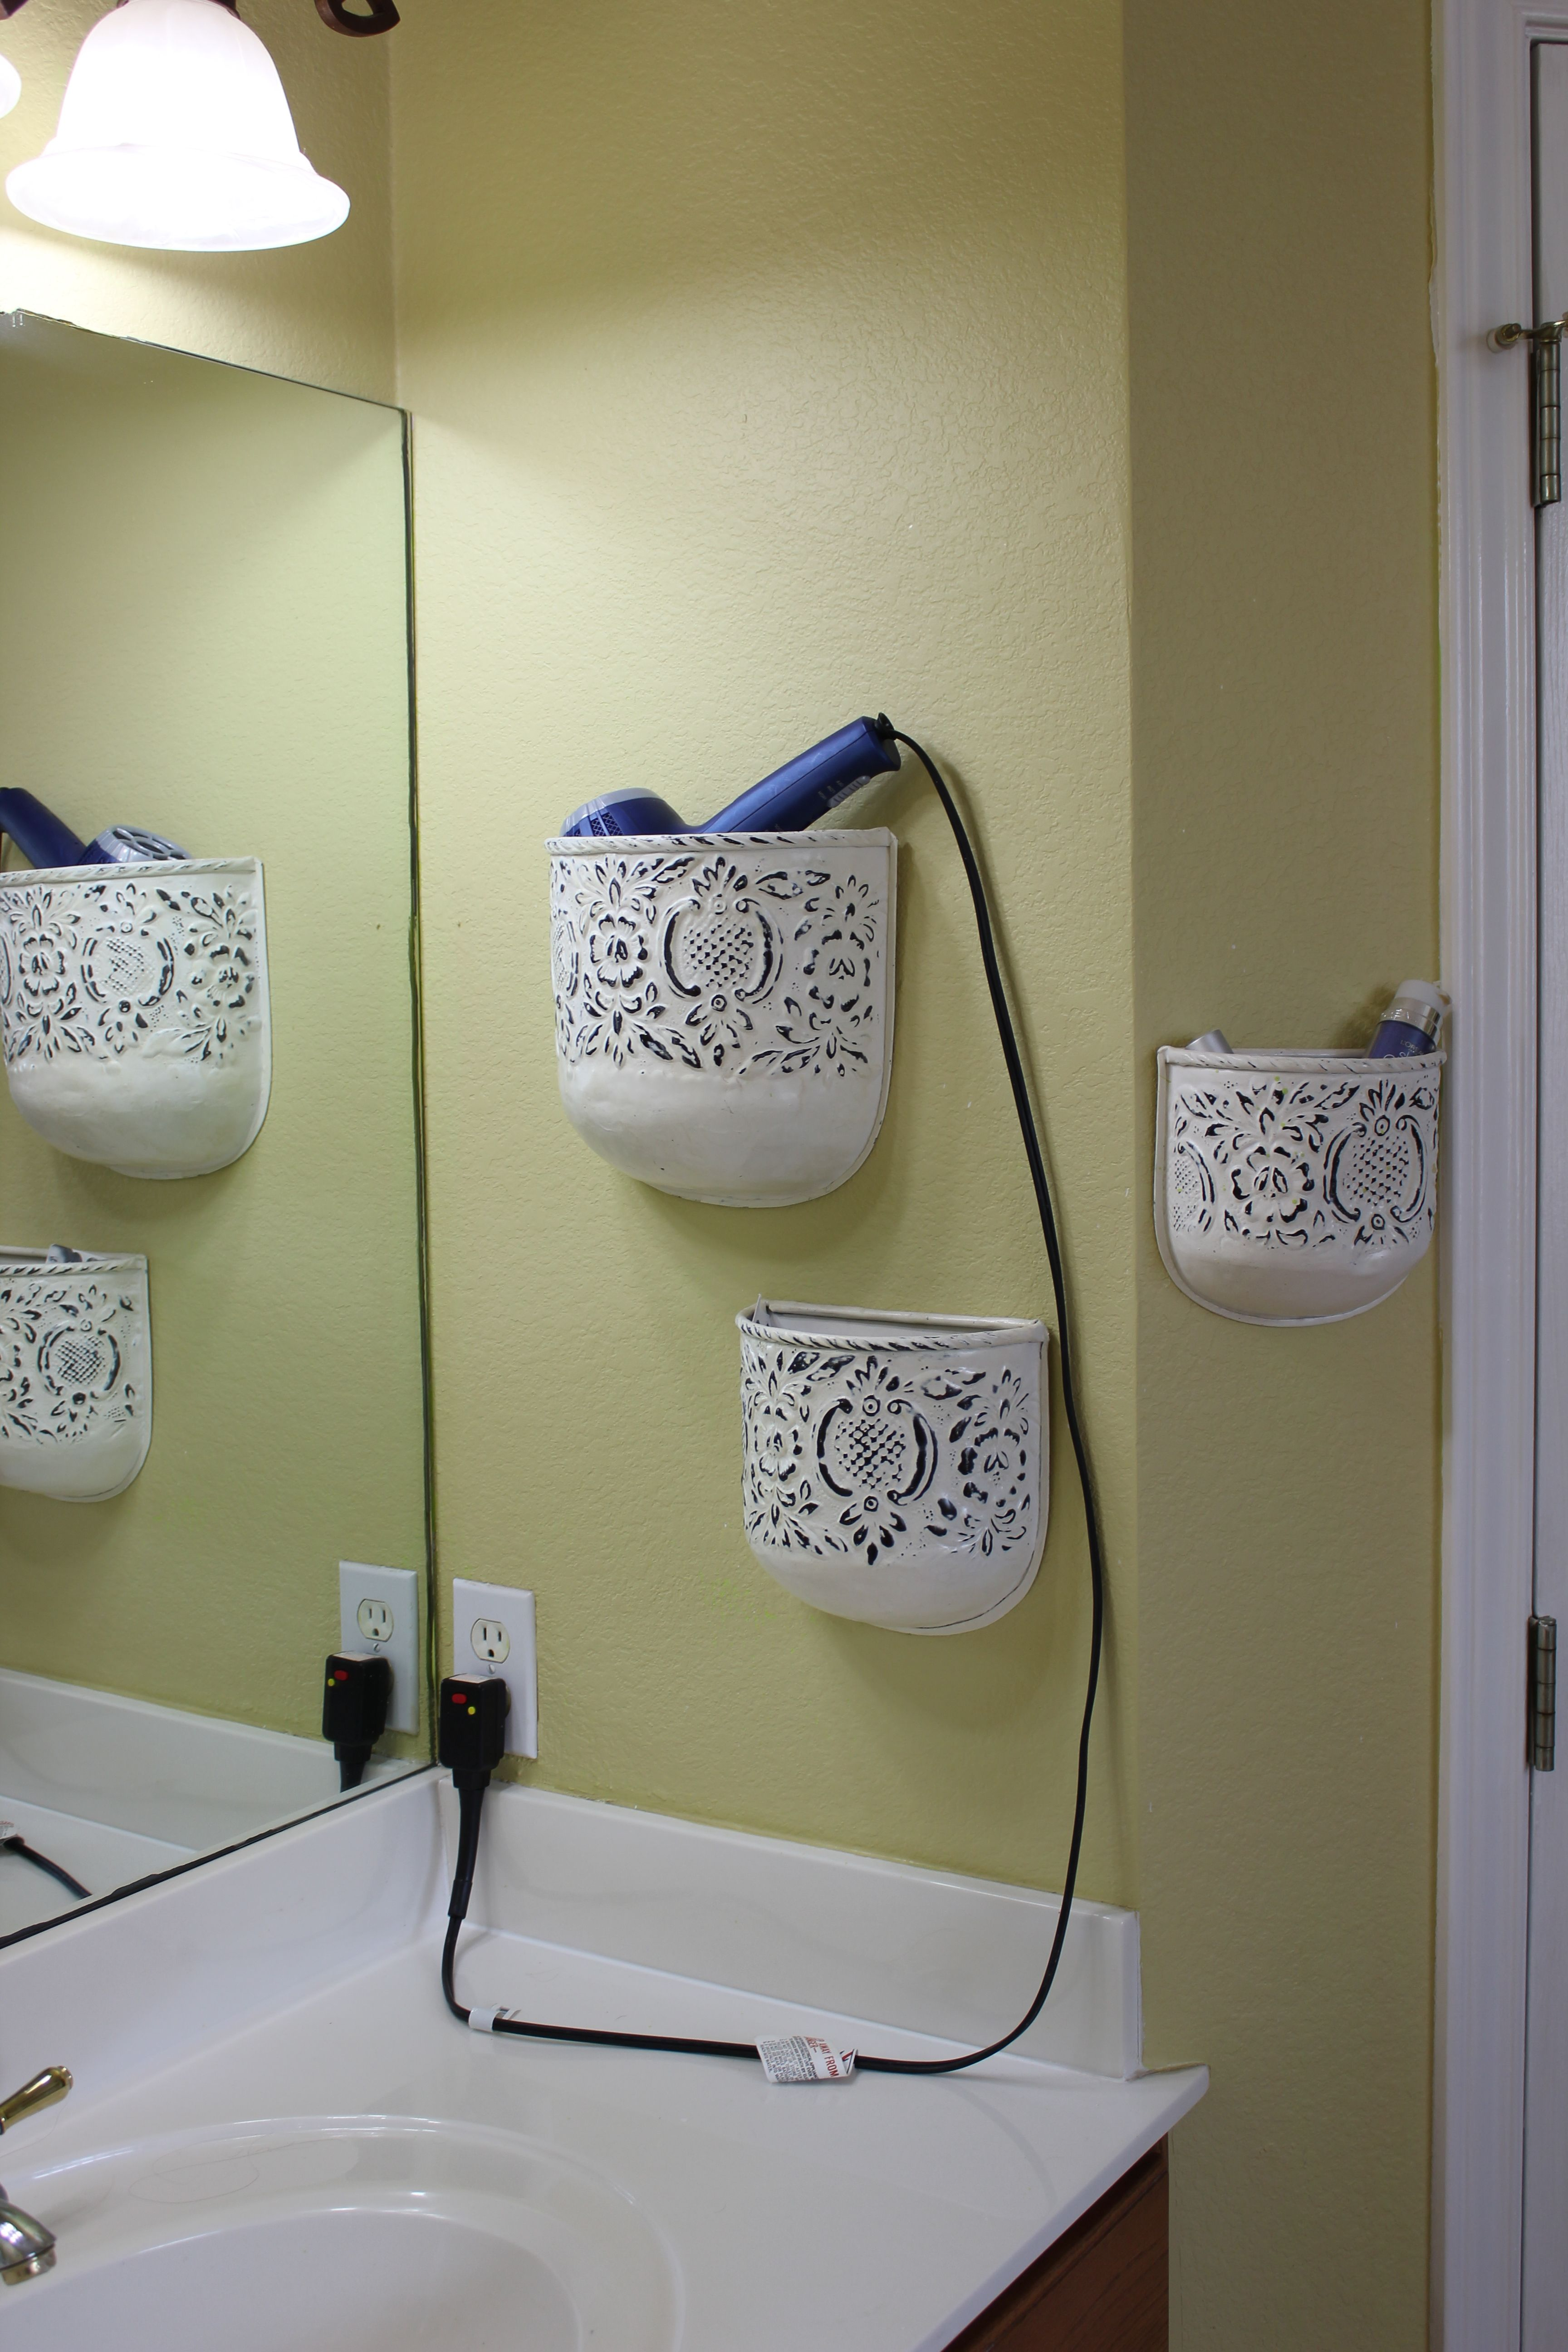 16 resourceful ways to add more storage to your bathroom organizing 16 resourceful ways to add more storage to your bathroom